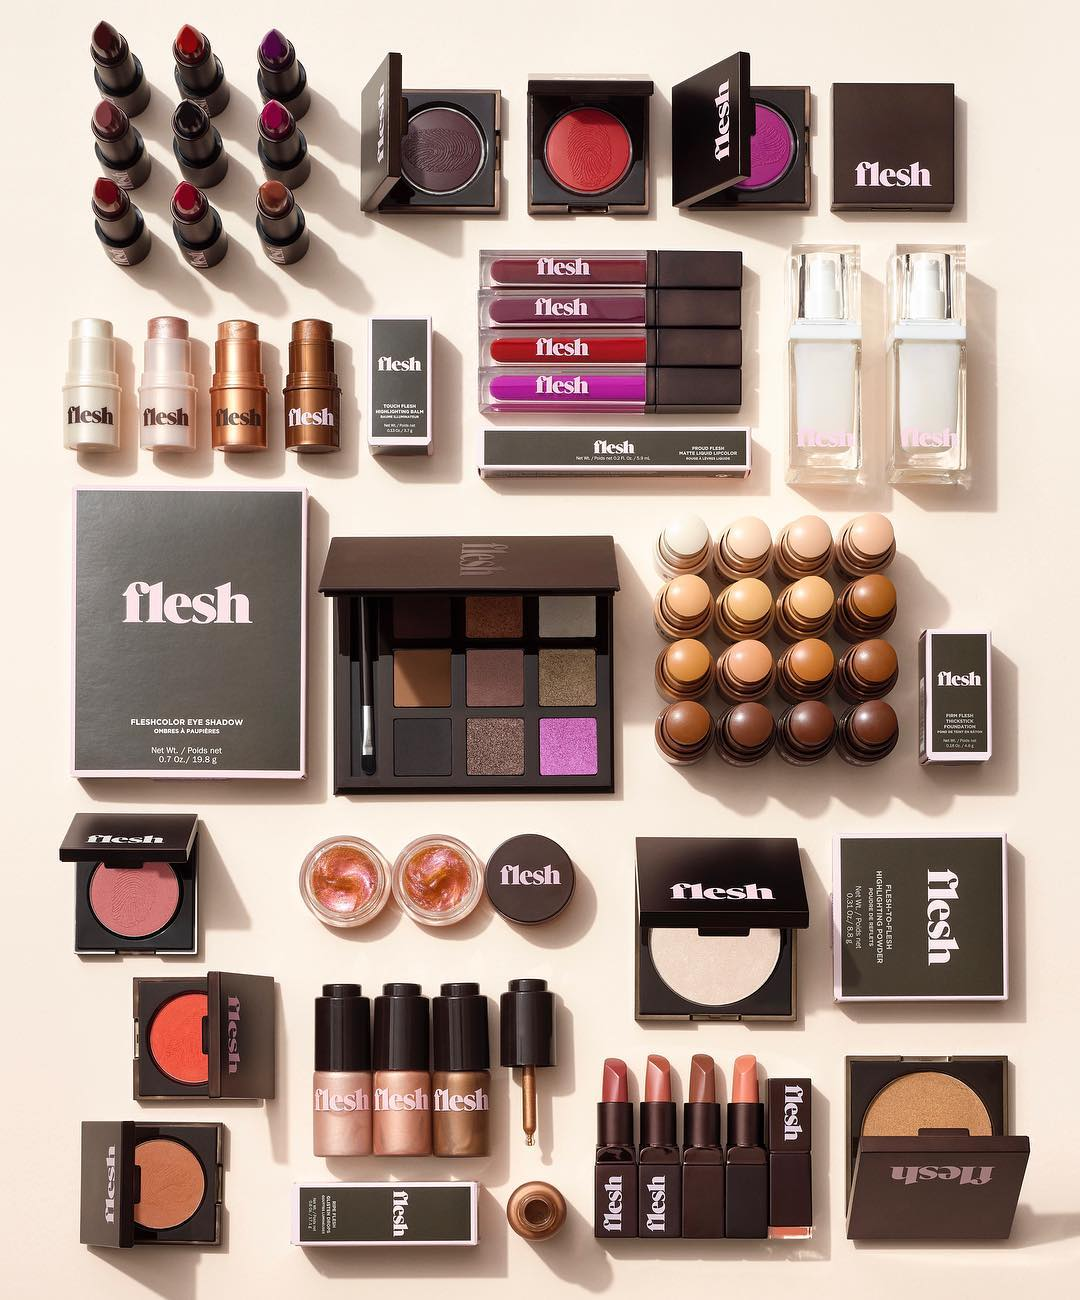 Budget Beauty brands 2018 Flesh BEauty